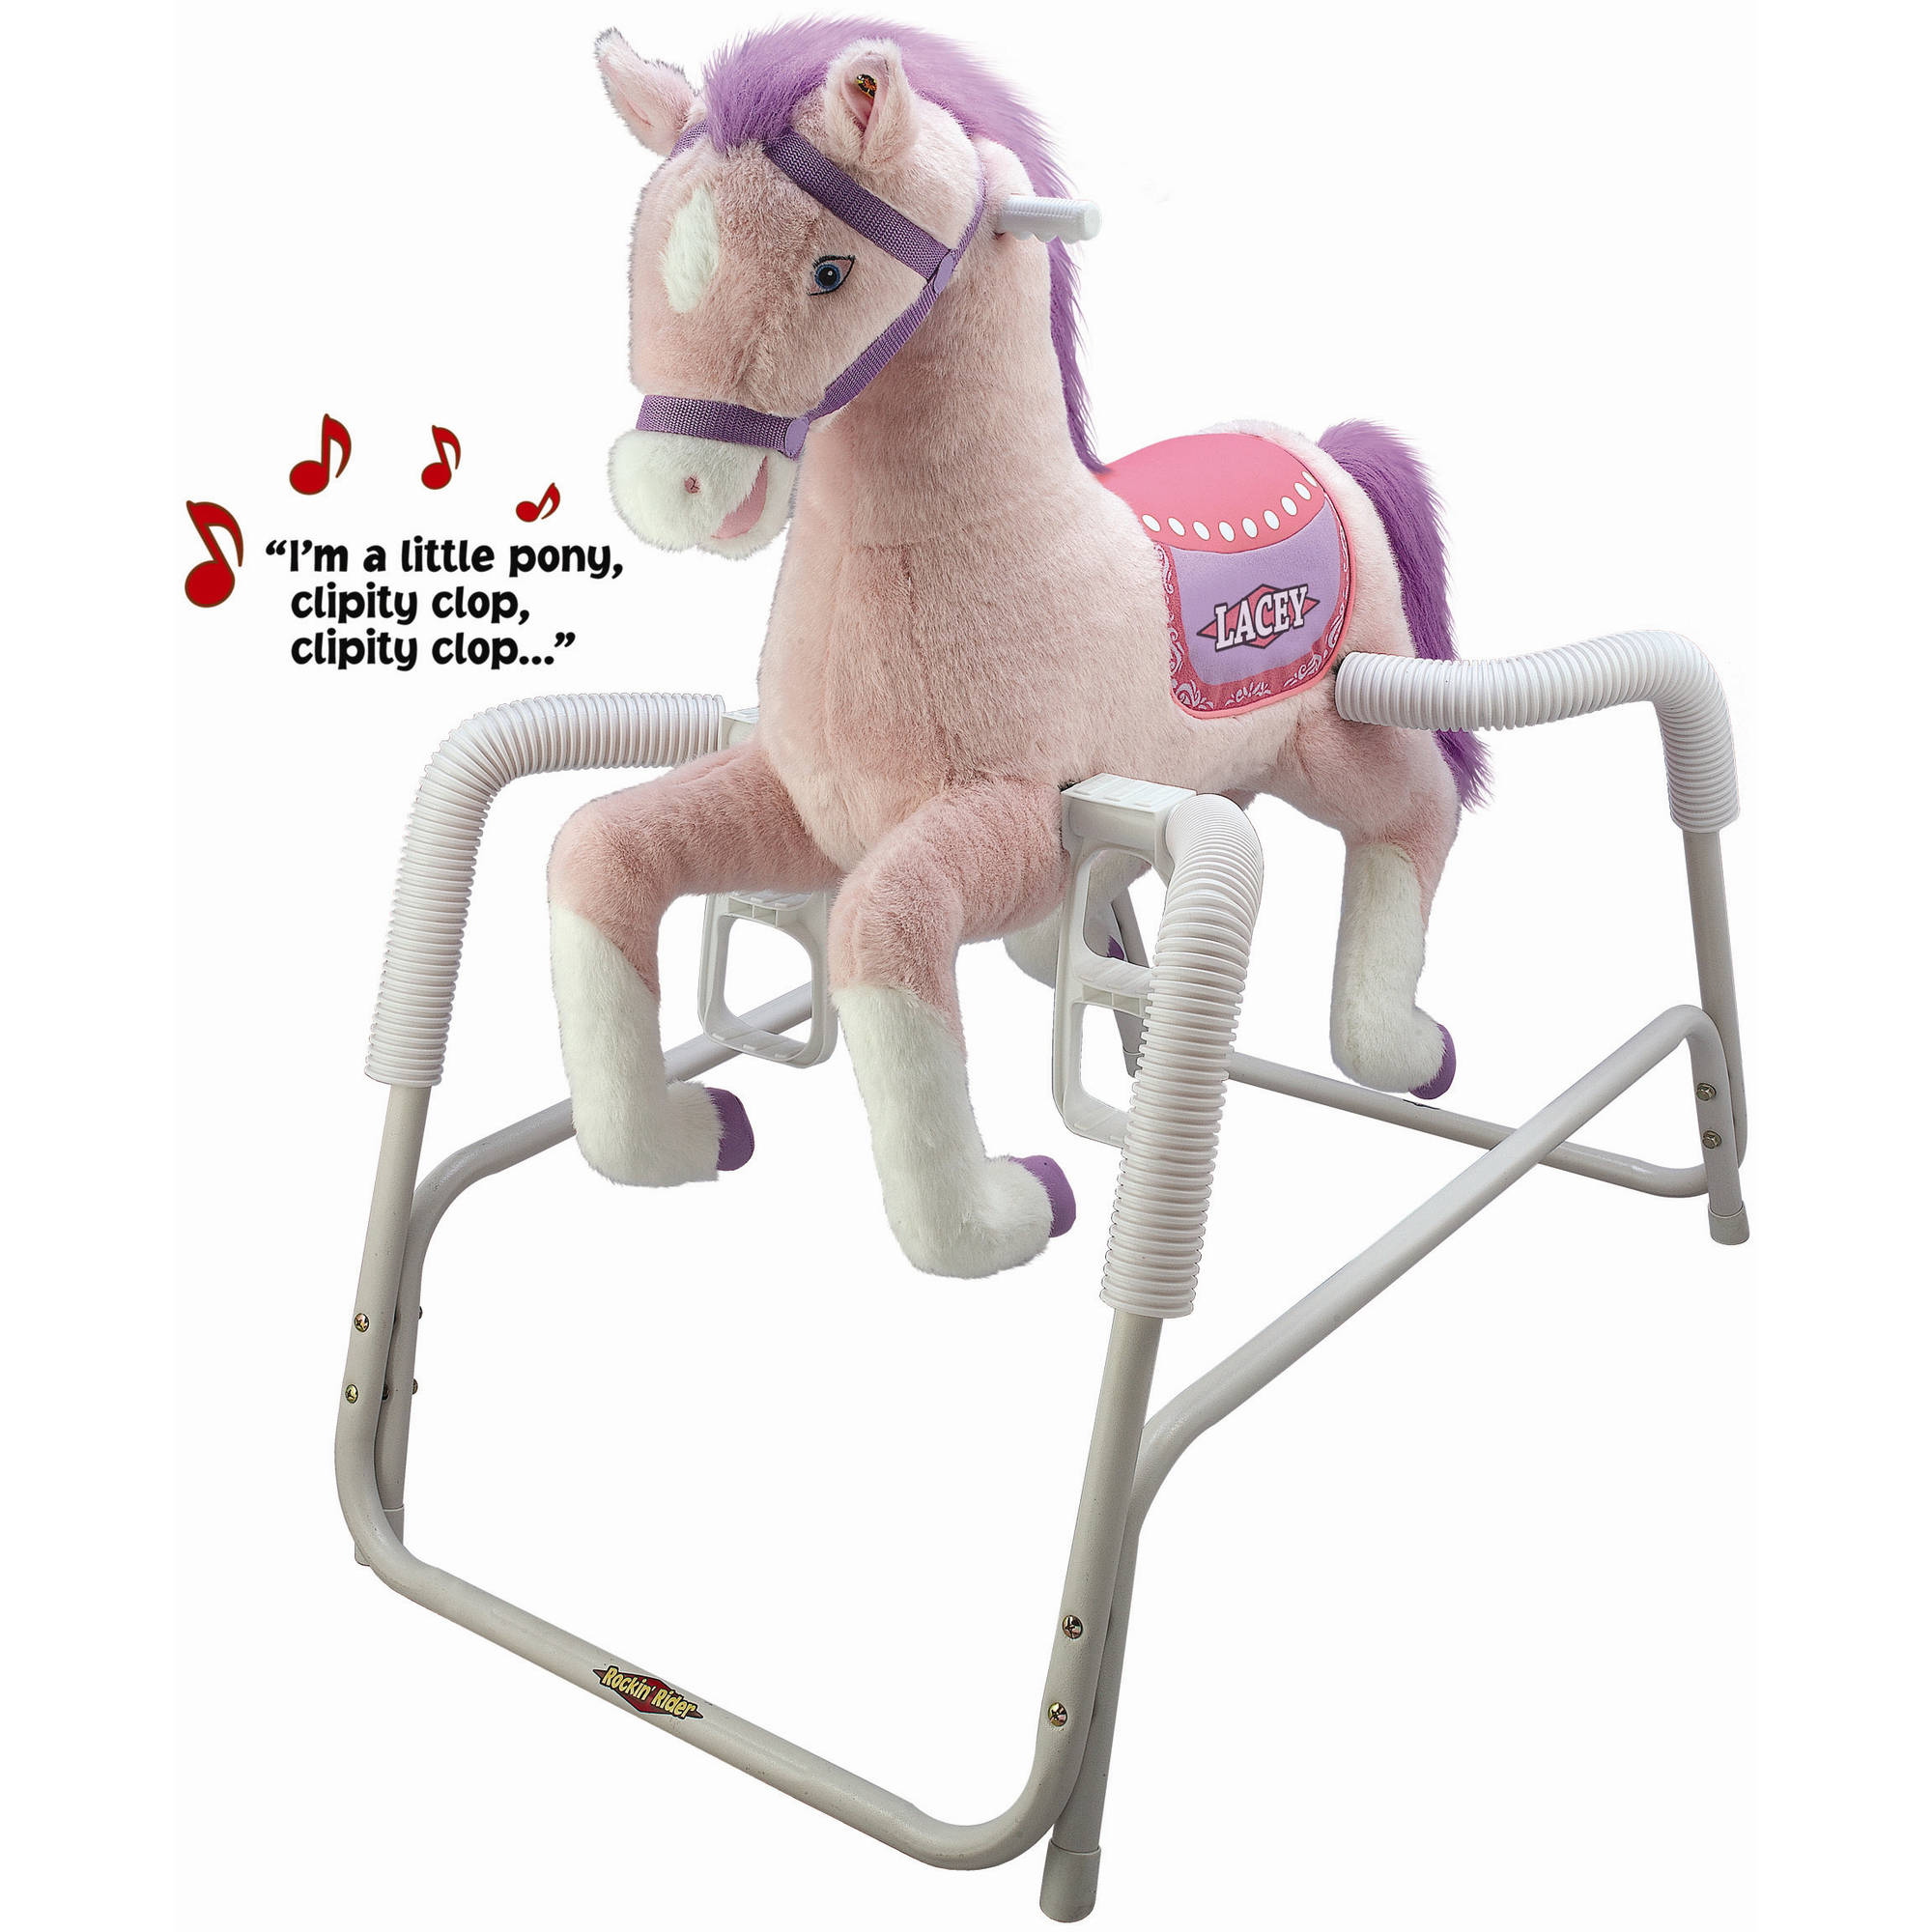 Rockin\' Rider Lacey Deluxe Talking Plush Pink Spring Horse, Animated ...